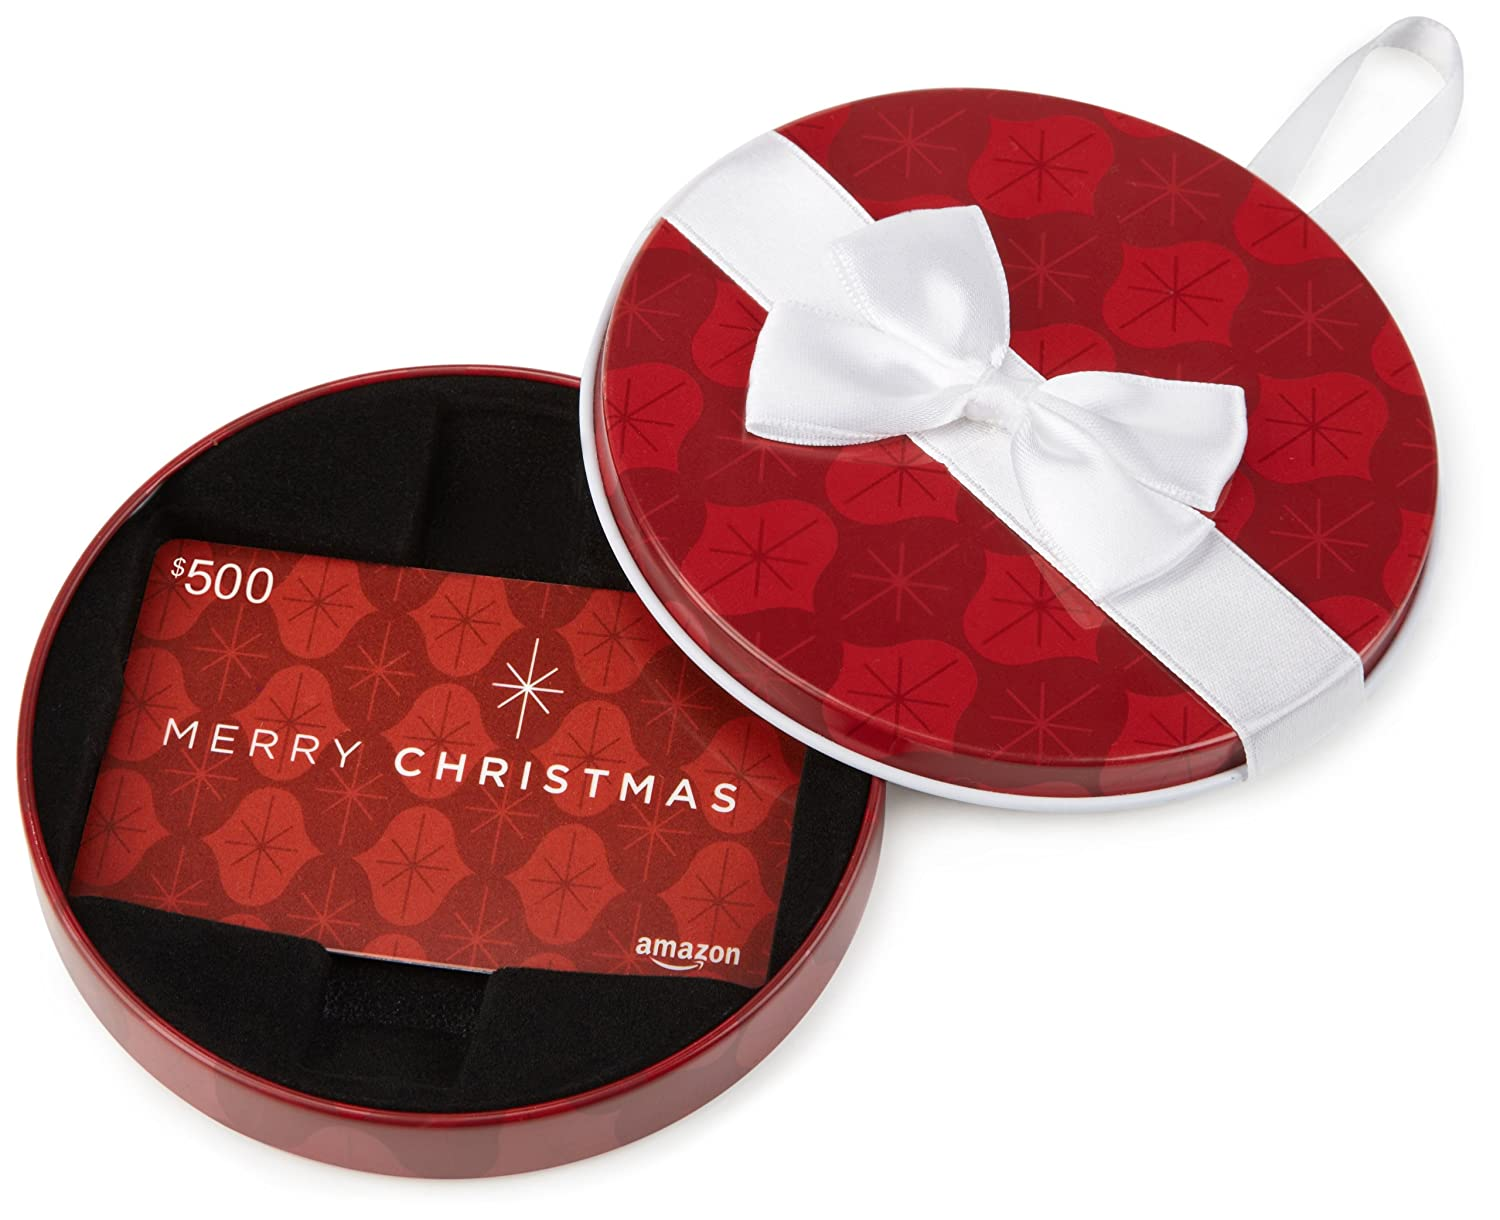 Amazon.ca Gift Card in a Red Ornament Tin (Merry Christmas Card Design)